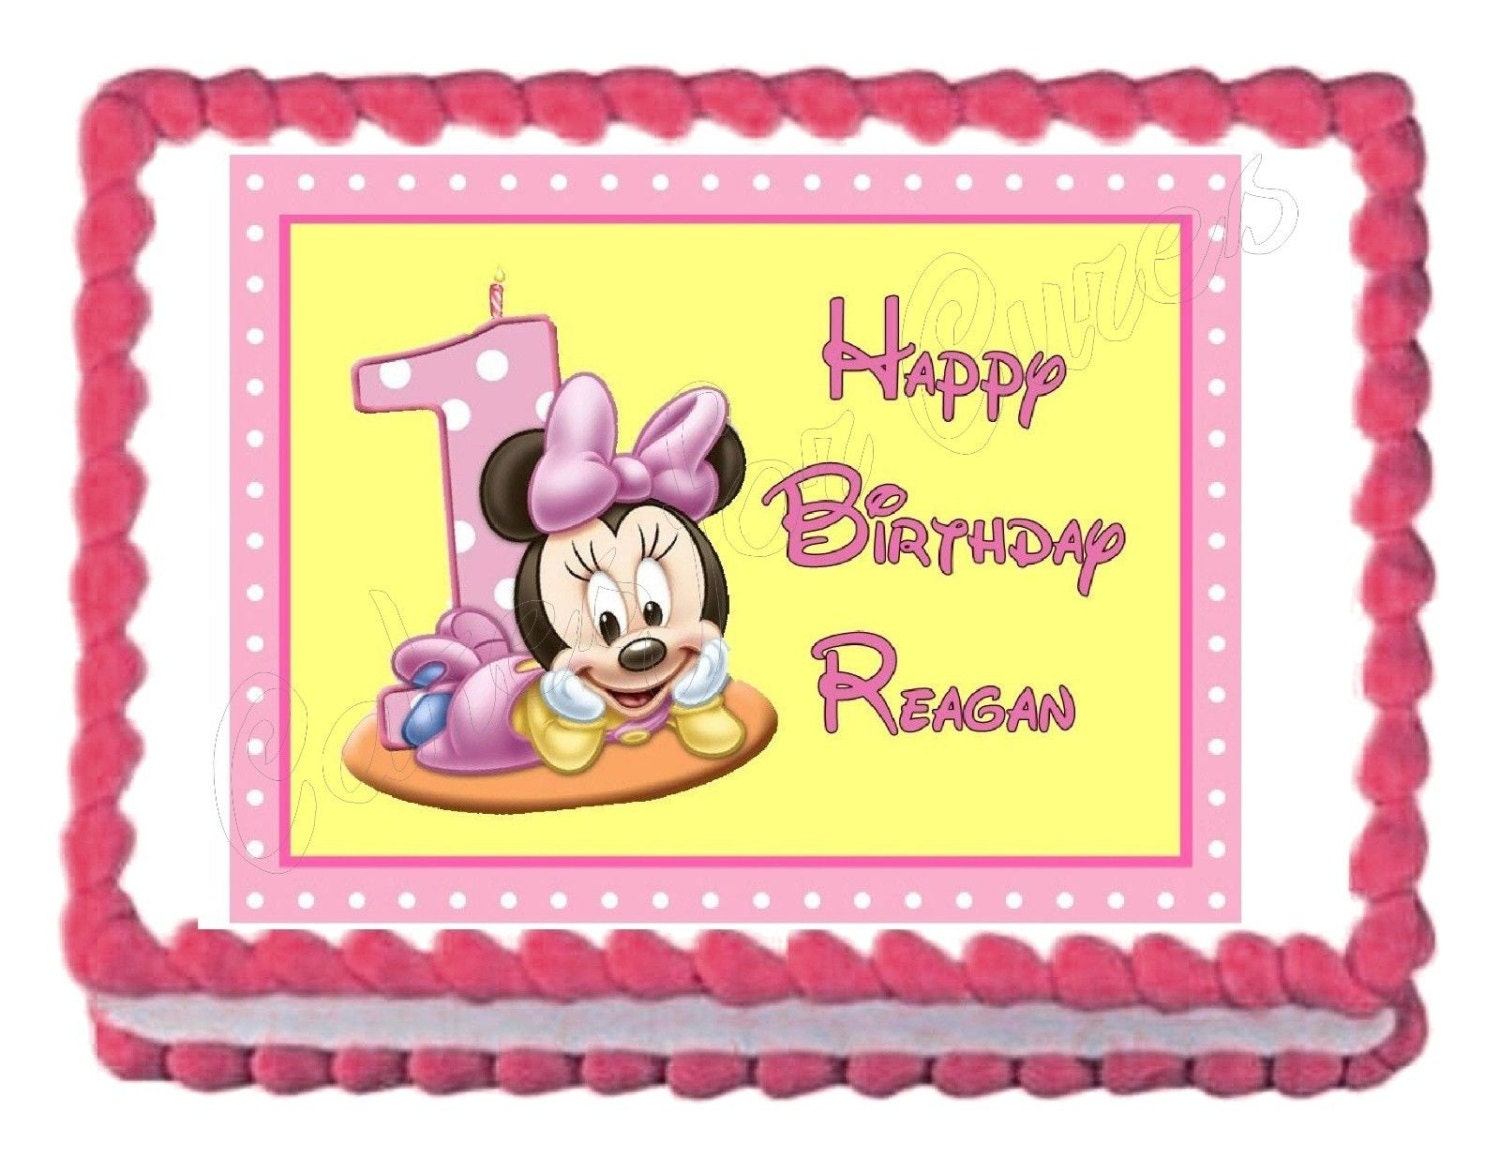 Baby Minnie Mouse first or second birthday edible cake image